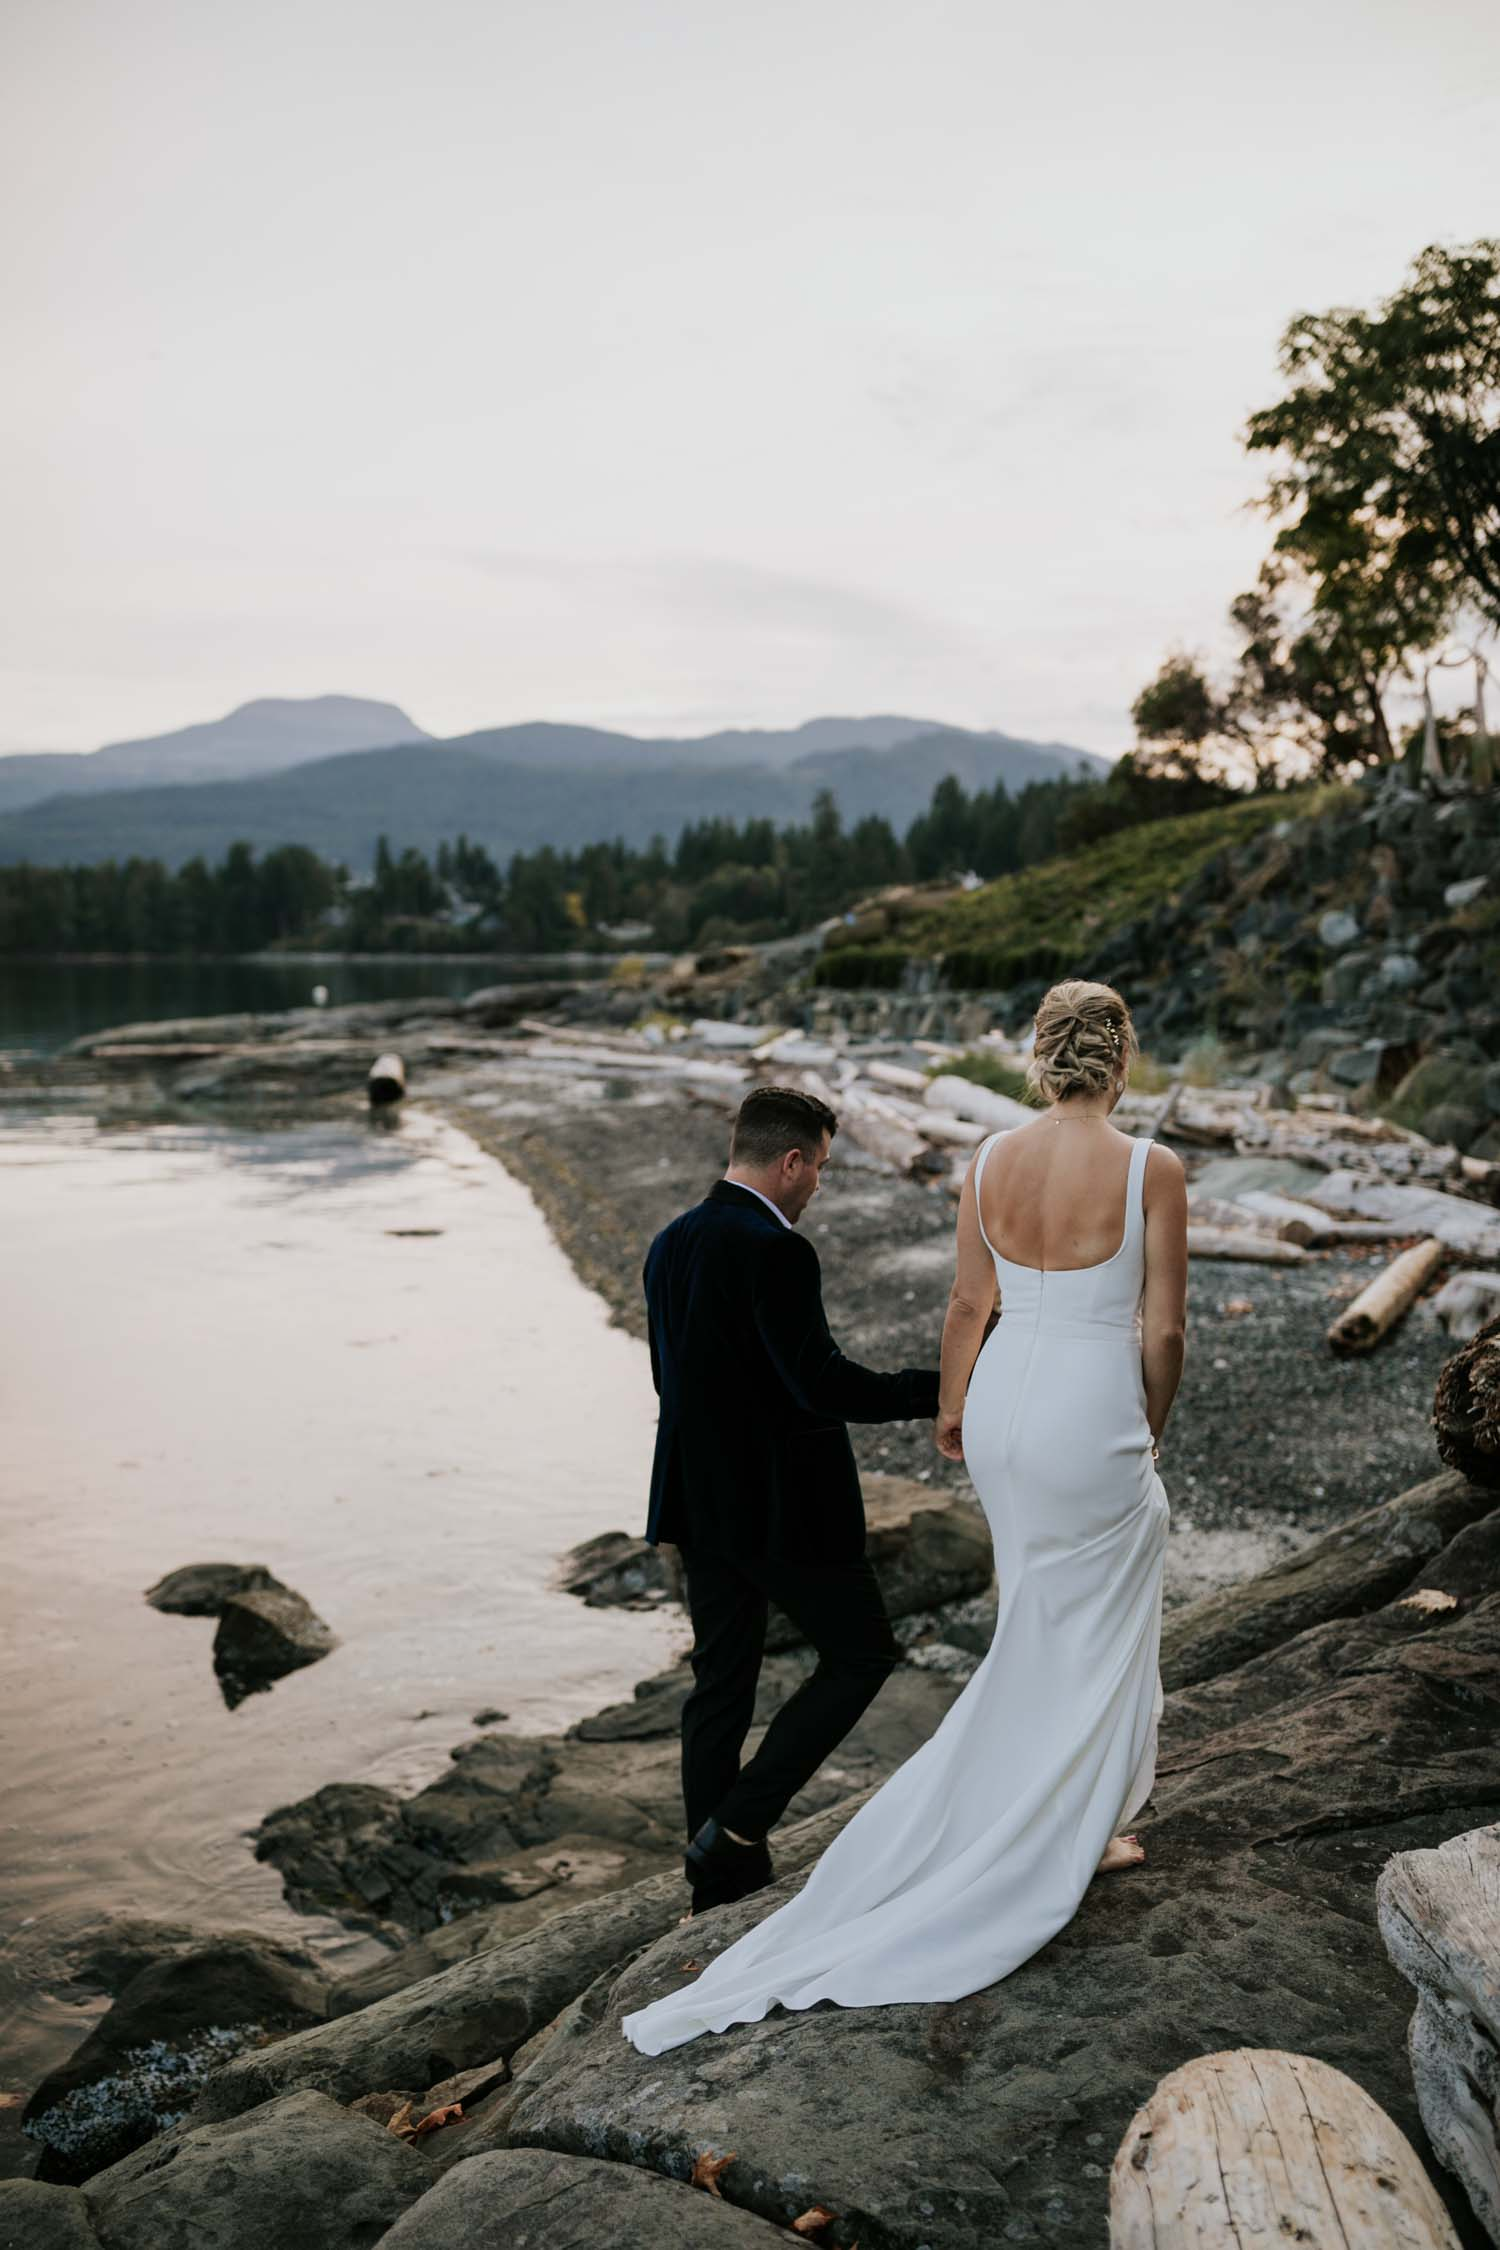 Incredible Best Vancouver Island Wedding Photographer based in Victoria